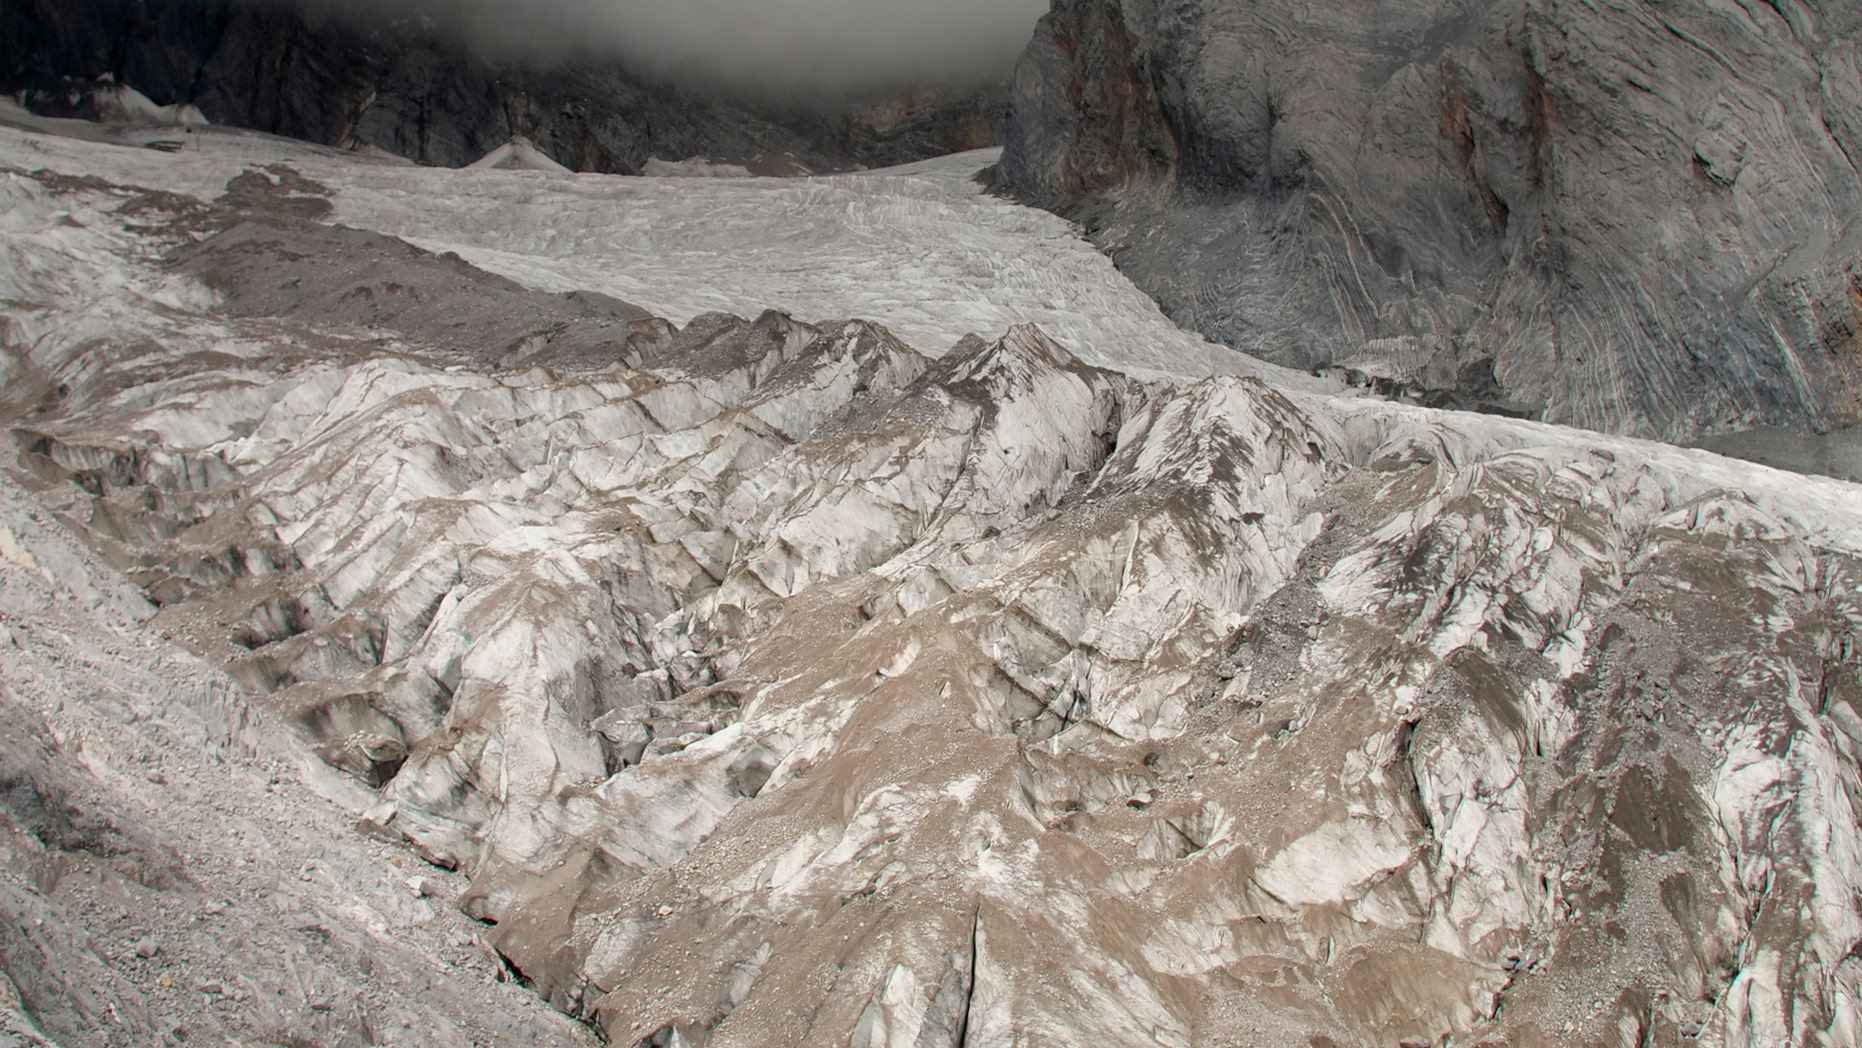 Earth's glaciers are melting faster than scientists thought